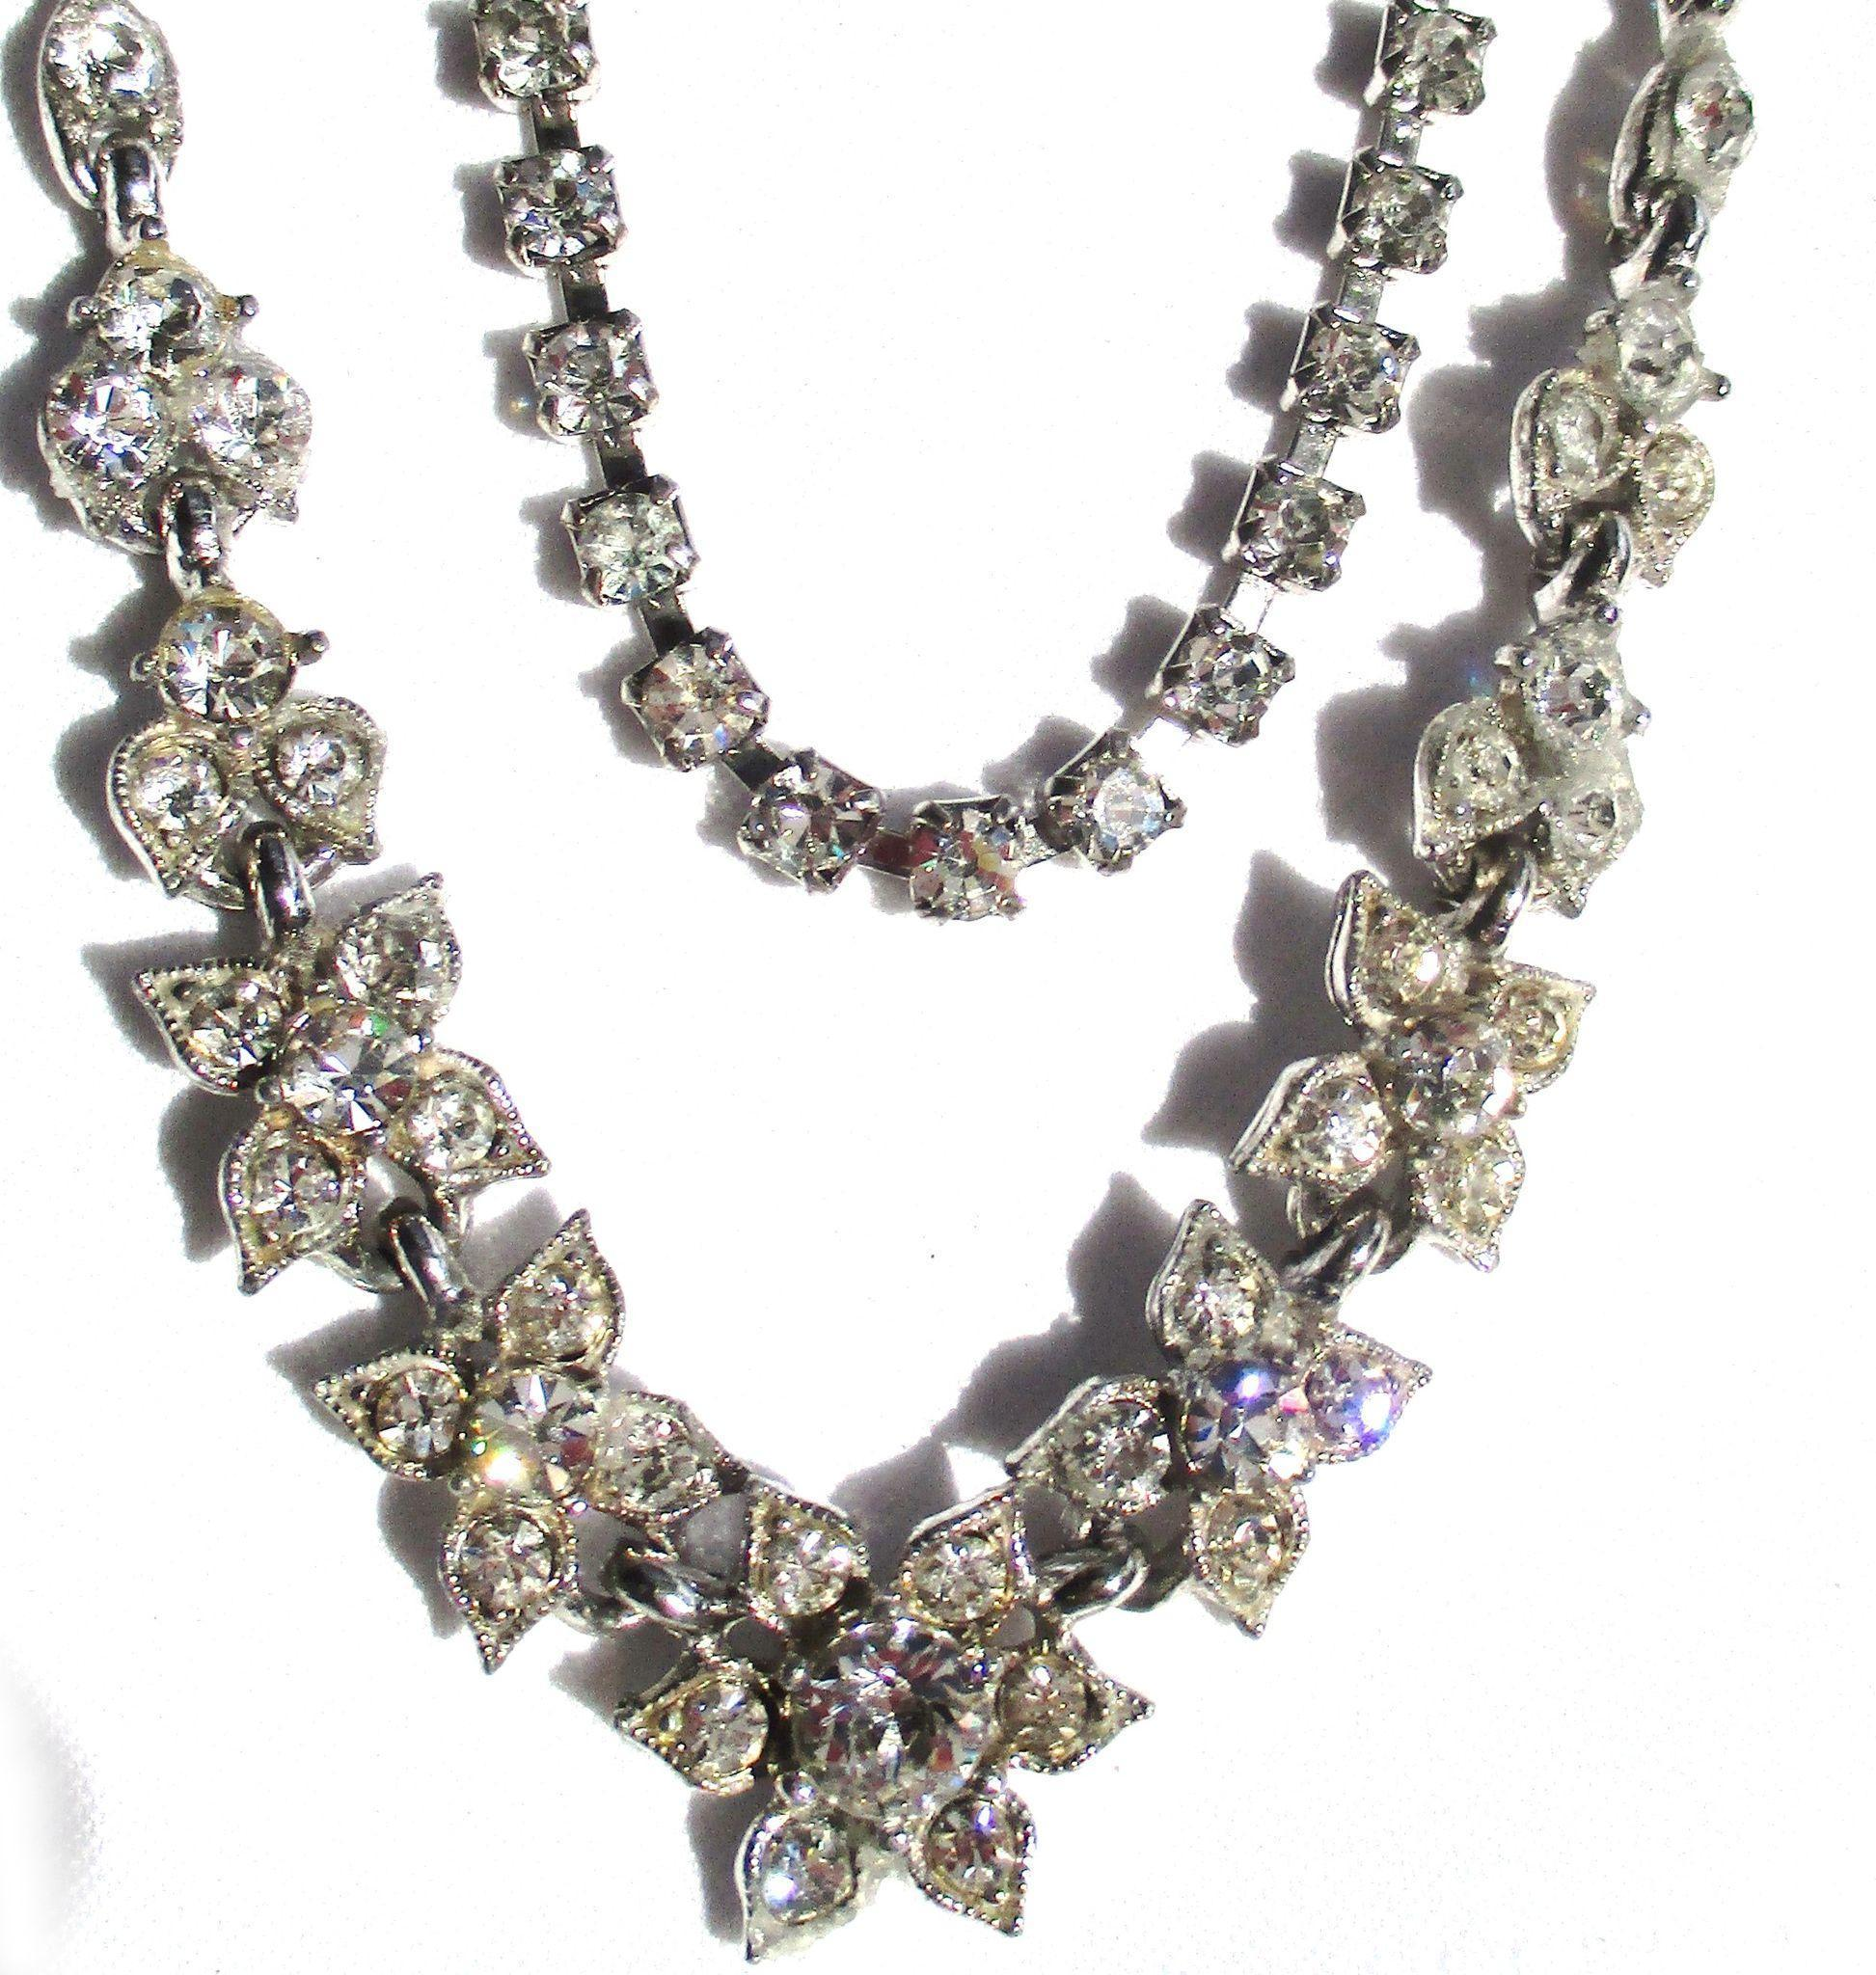 Vintage Rhinestone Flower Necklace and Bracelet Set